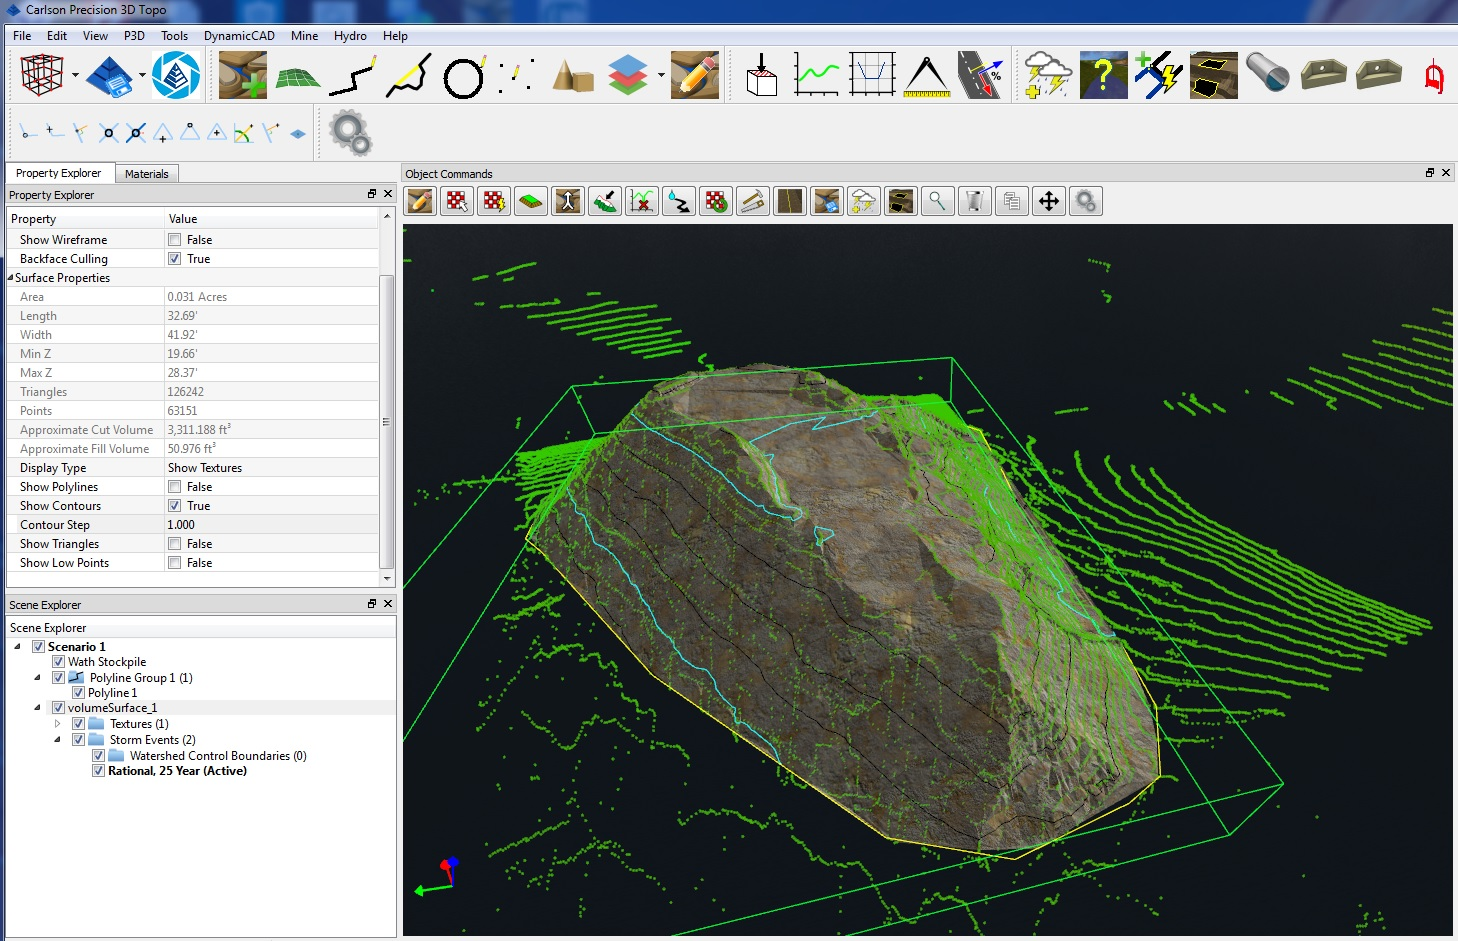 Working with Carlson Precision 3D Topo 2016.2 full